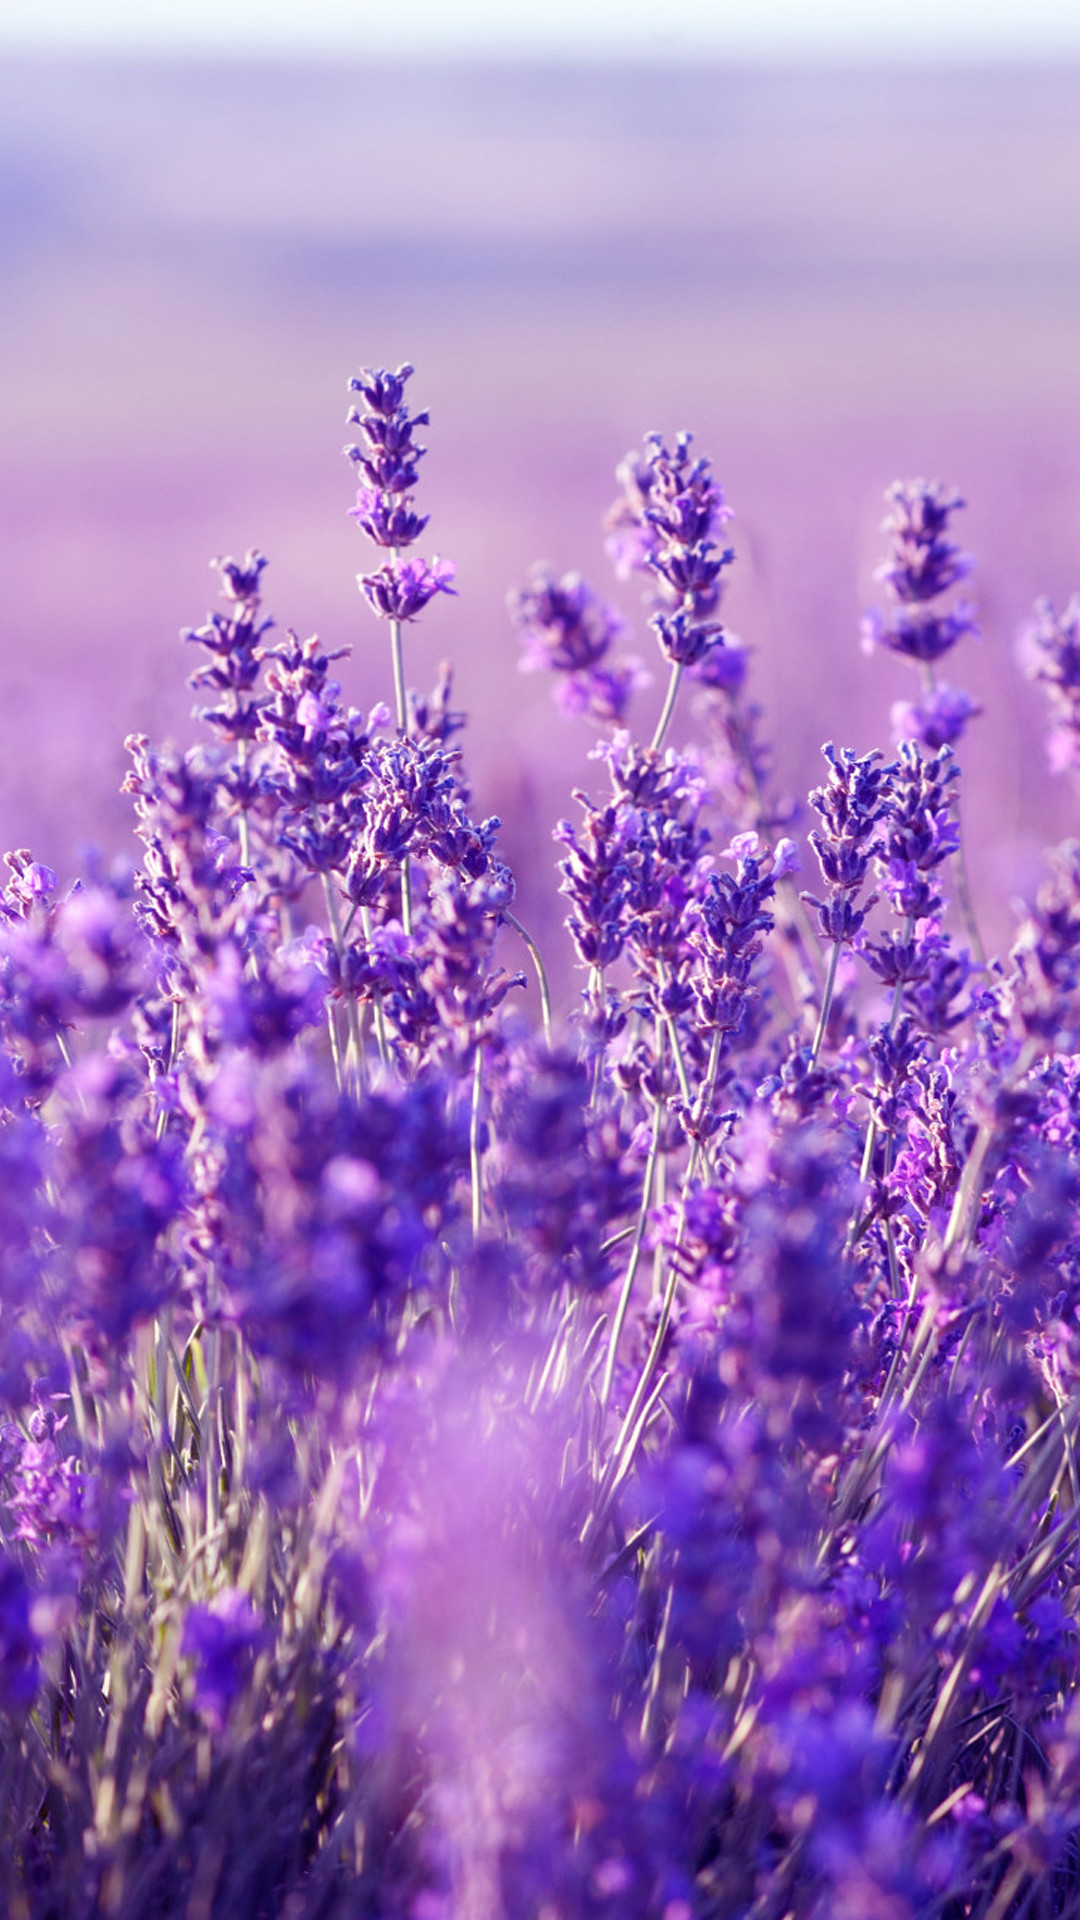 1080x1920 Beautiful Lavender Wallpaper: HD Lavender Mobile Background -  http://helpyourselfimages.com